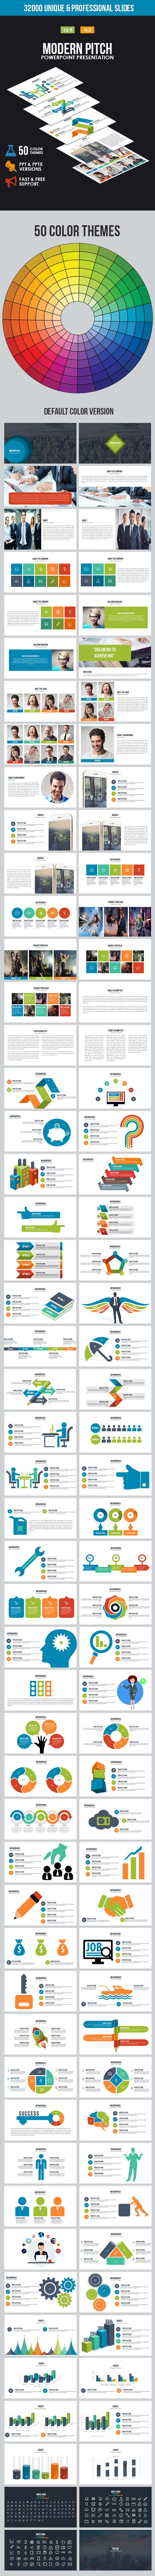 Modern Pitch Powerpoint Template - Business PowerPoint Templates